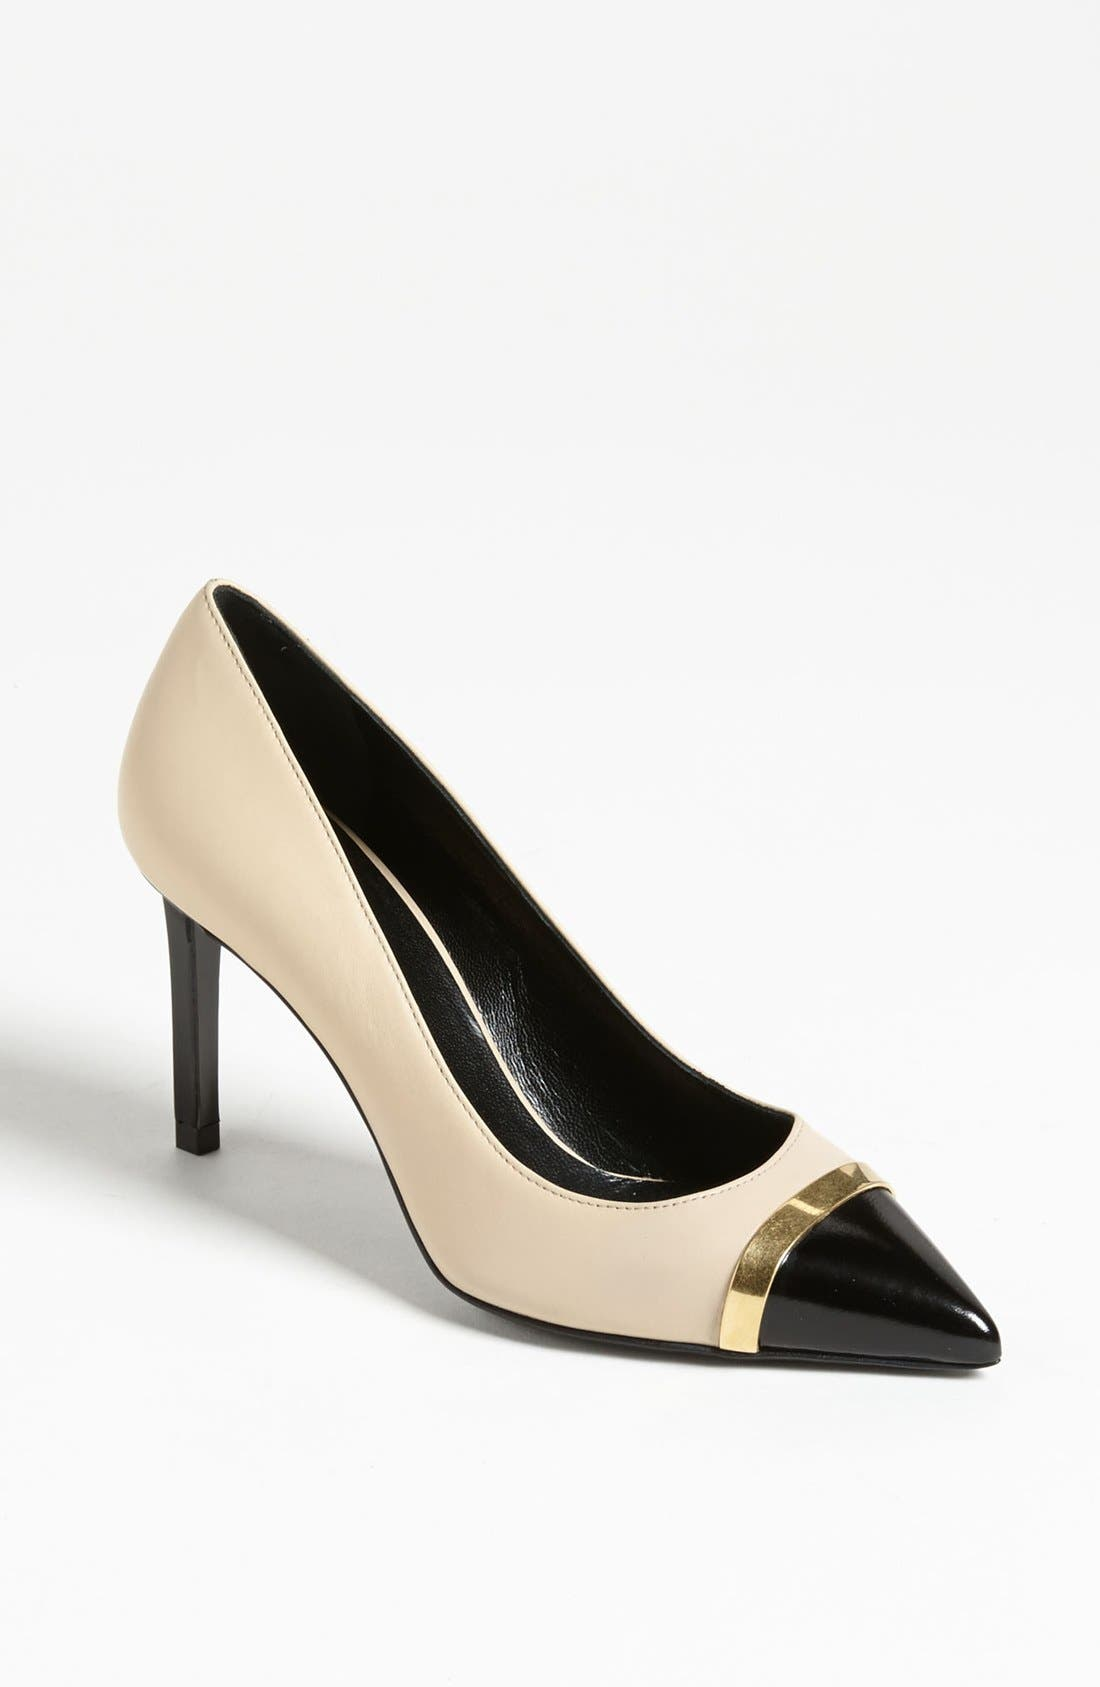 Main Image - Saint Laurent Cap Toe Pump